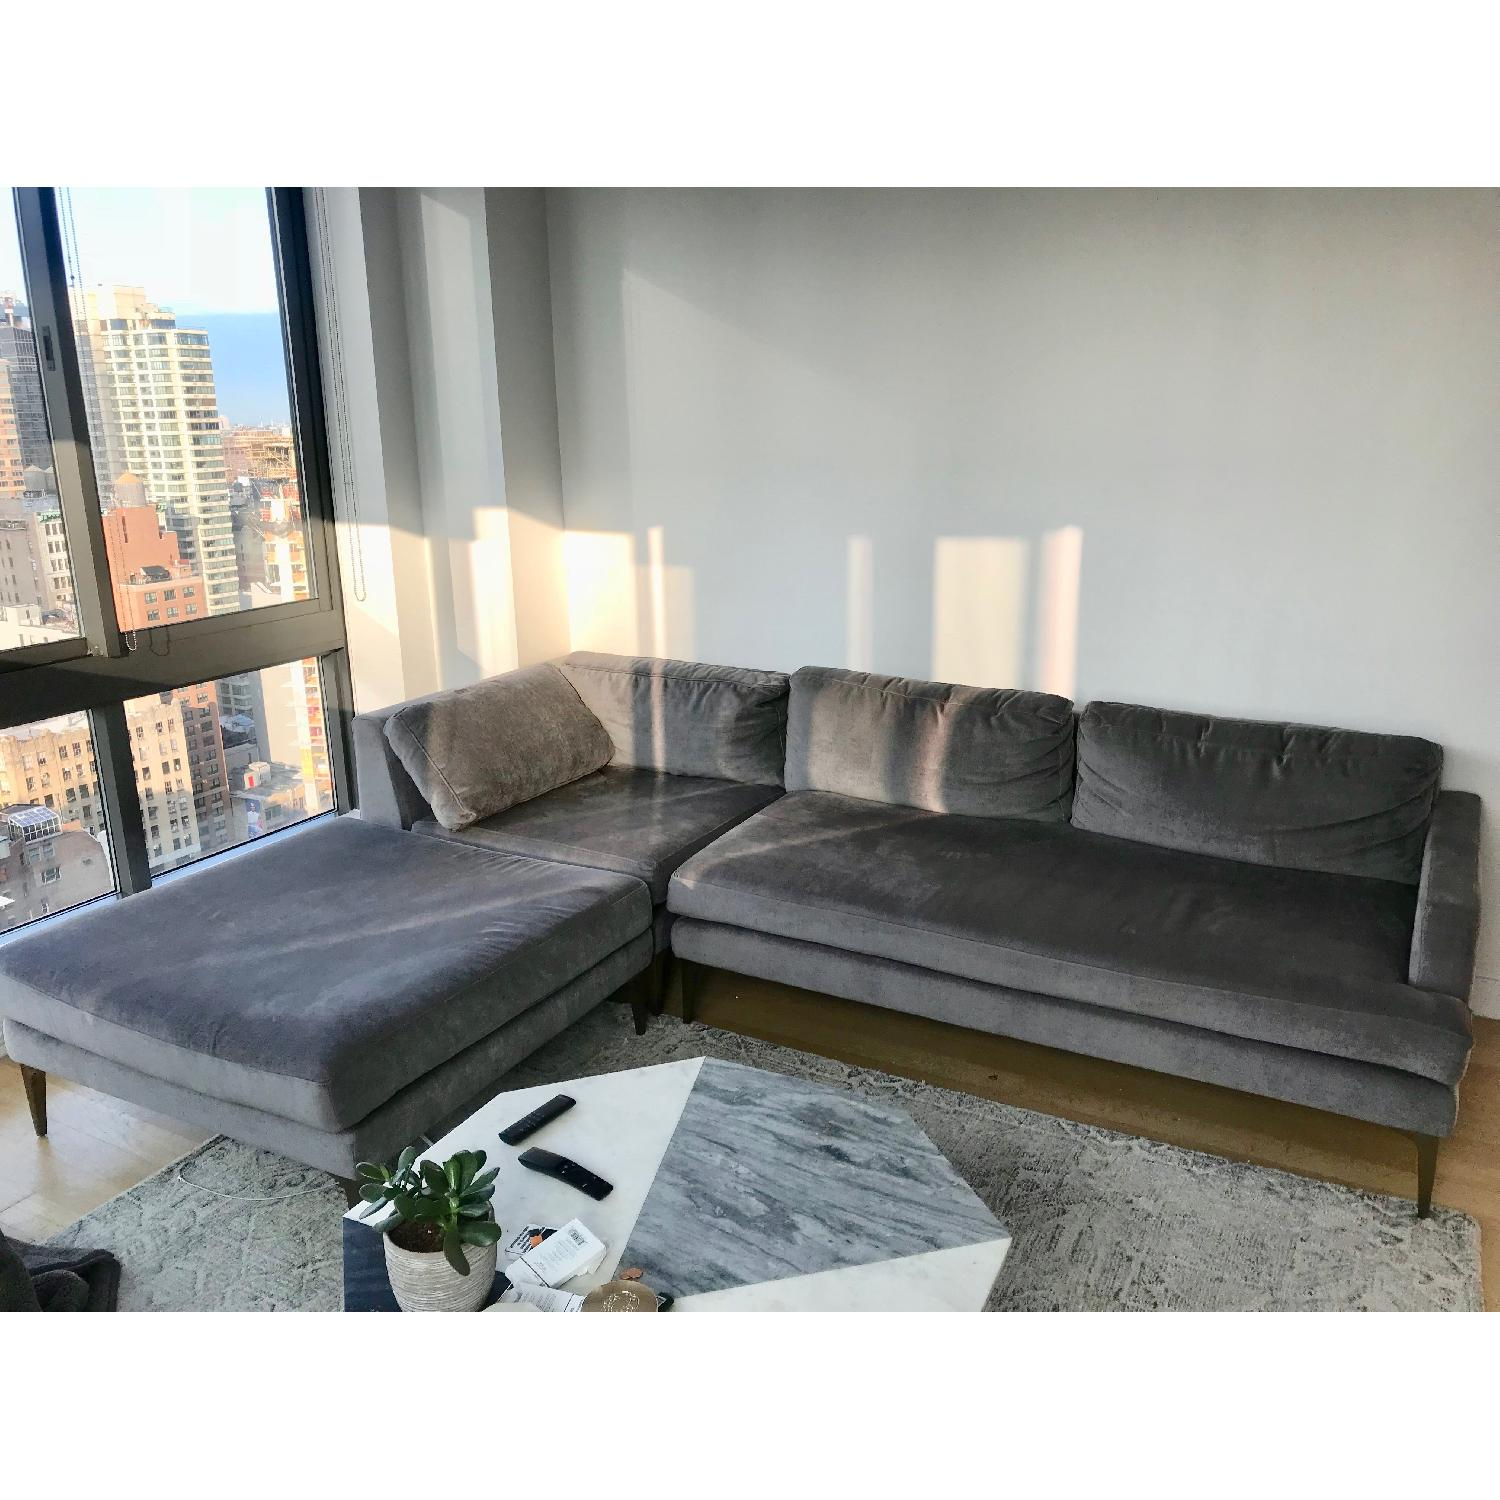 Admirable West Elm Andes Chaise Sectional West Elm Andes Chaise Sectional Sofa Aptdeco West Elm Sectional Andes West Elm Sectional Urban houzz 01 West Elm Sectional